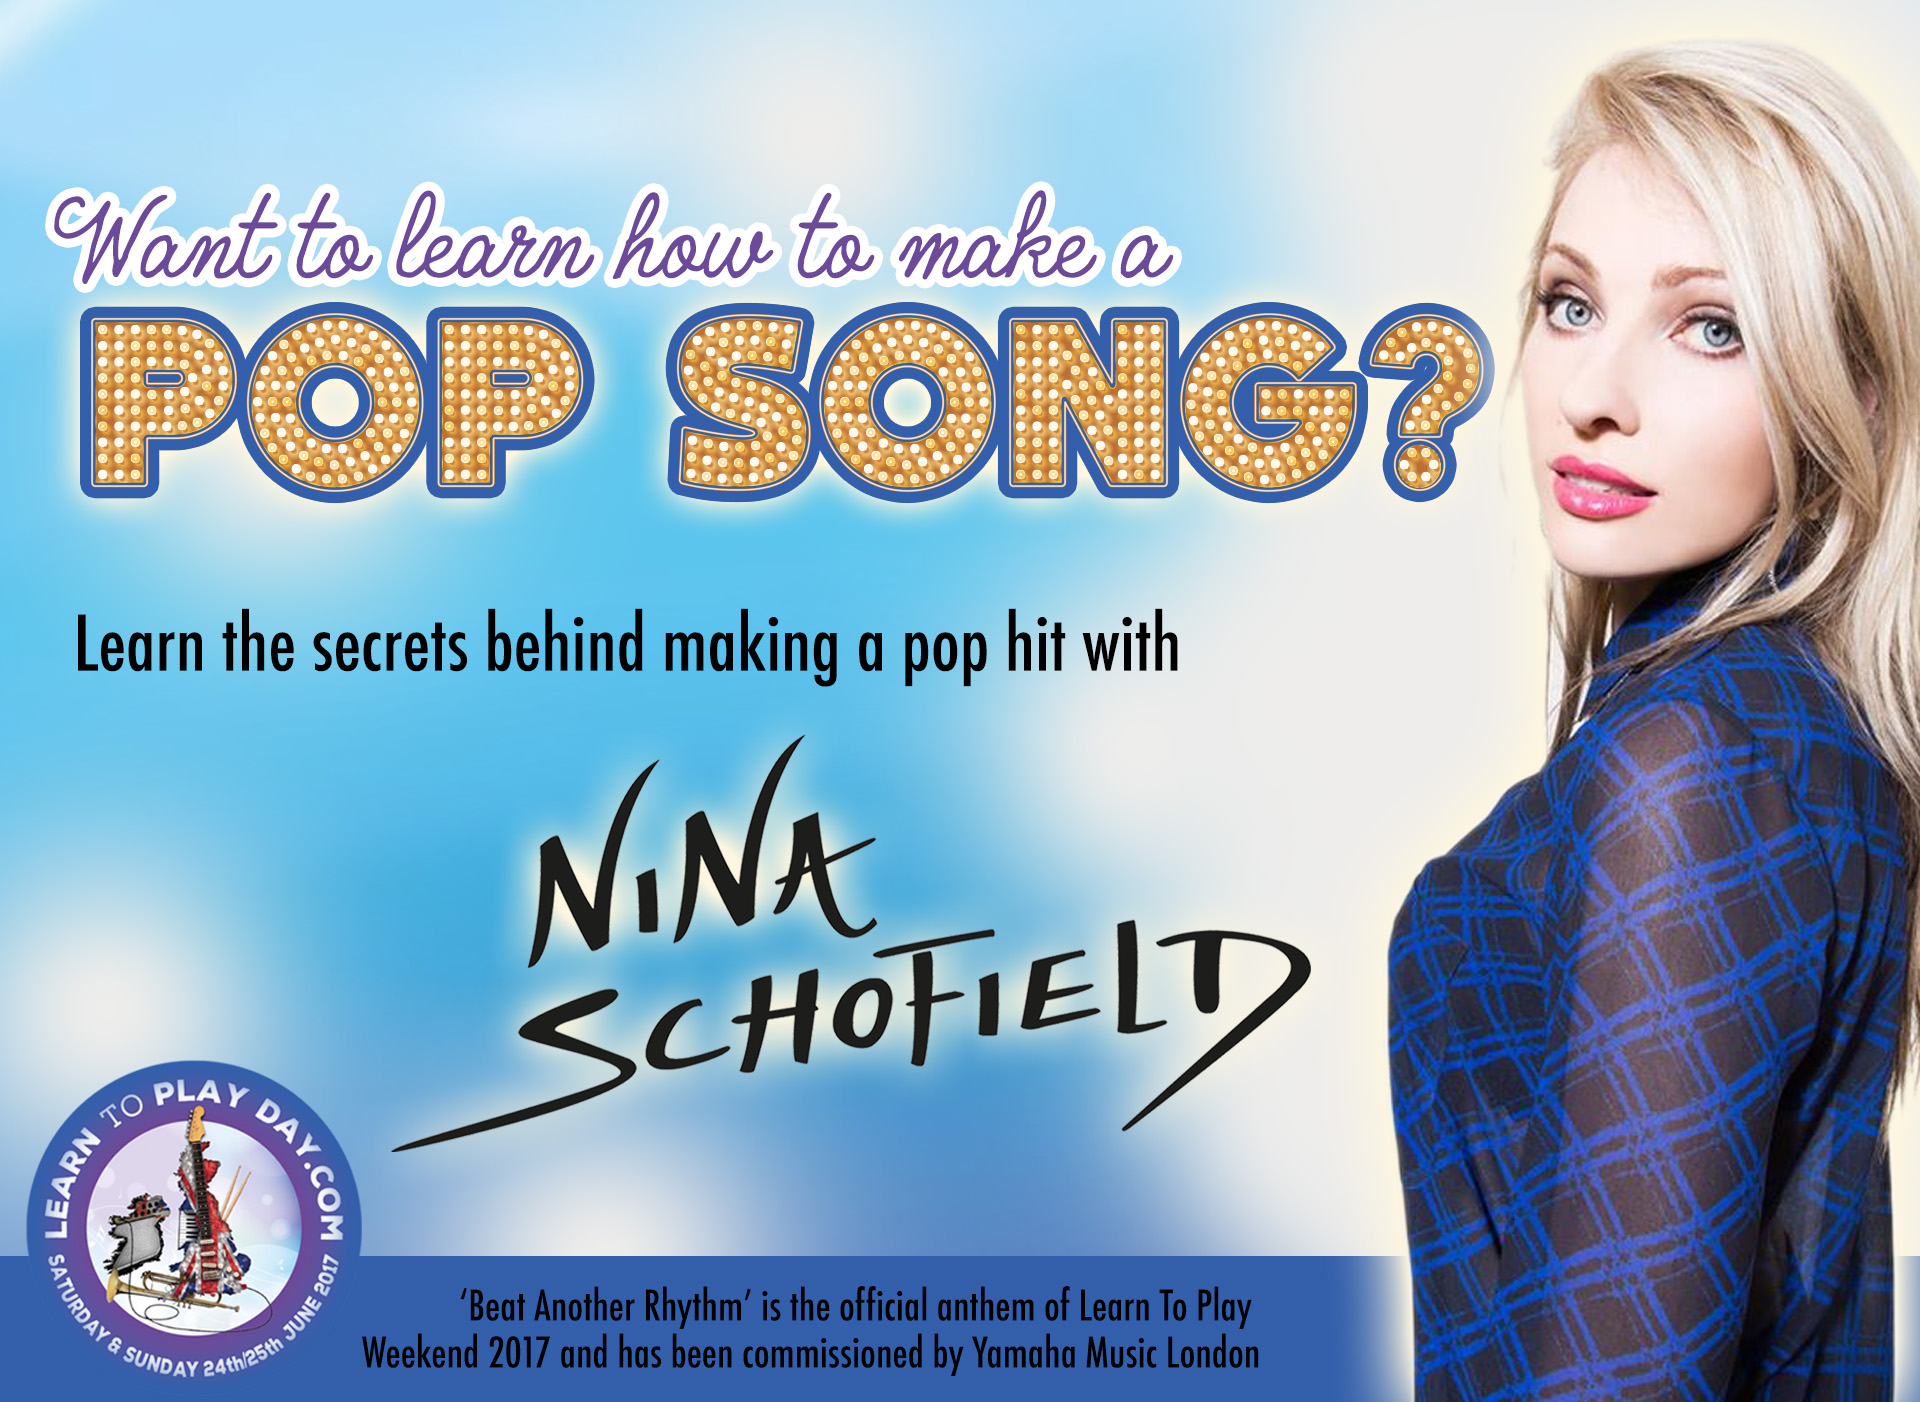 Want to learn how to make a pop song? Win a chance to be on Nina Schofield's Music Workshop